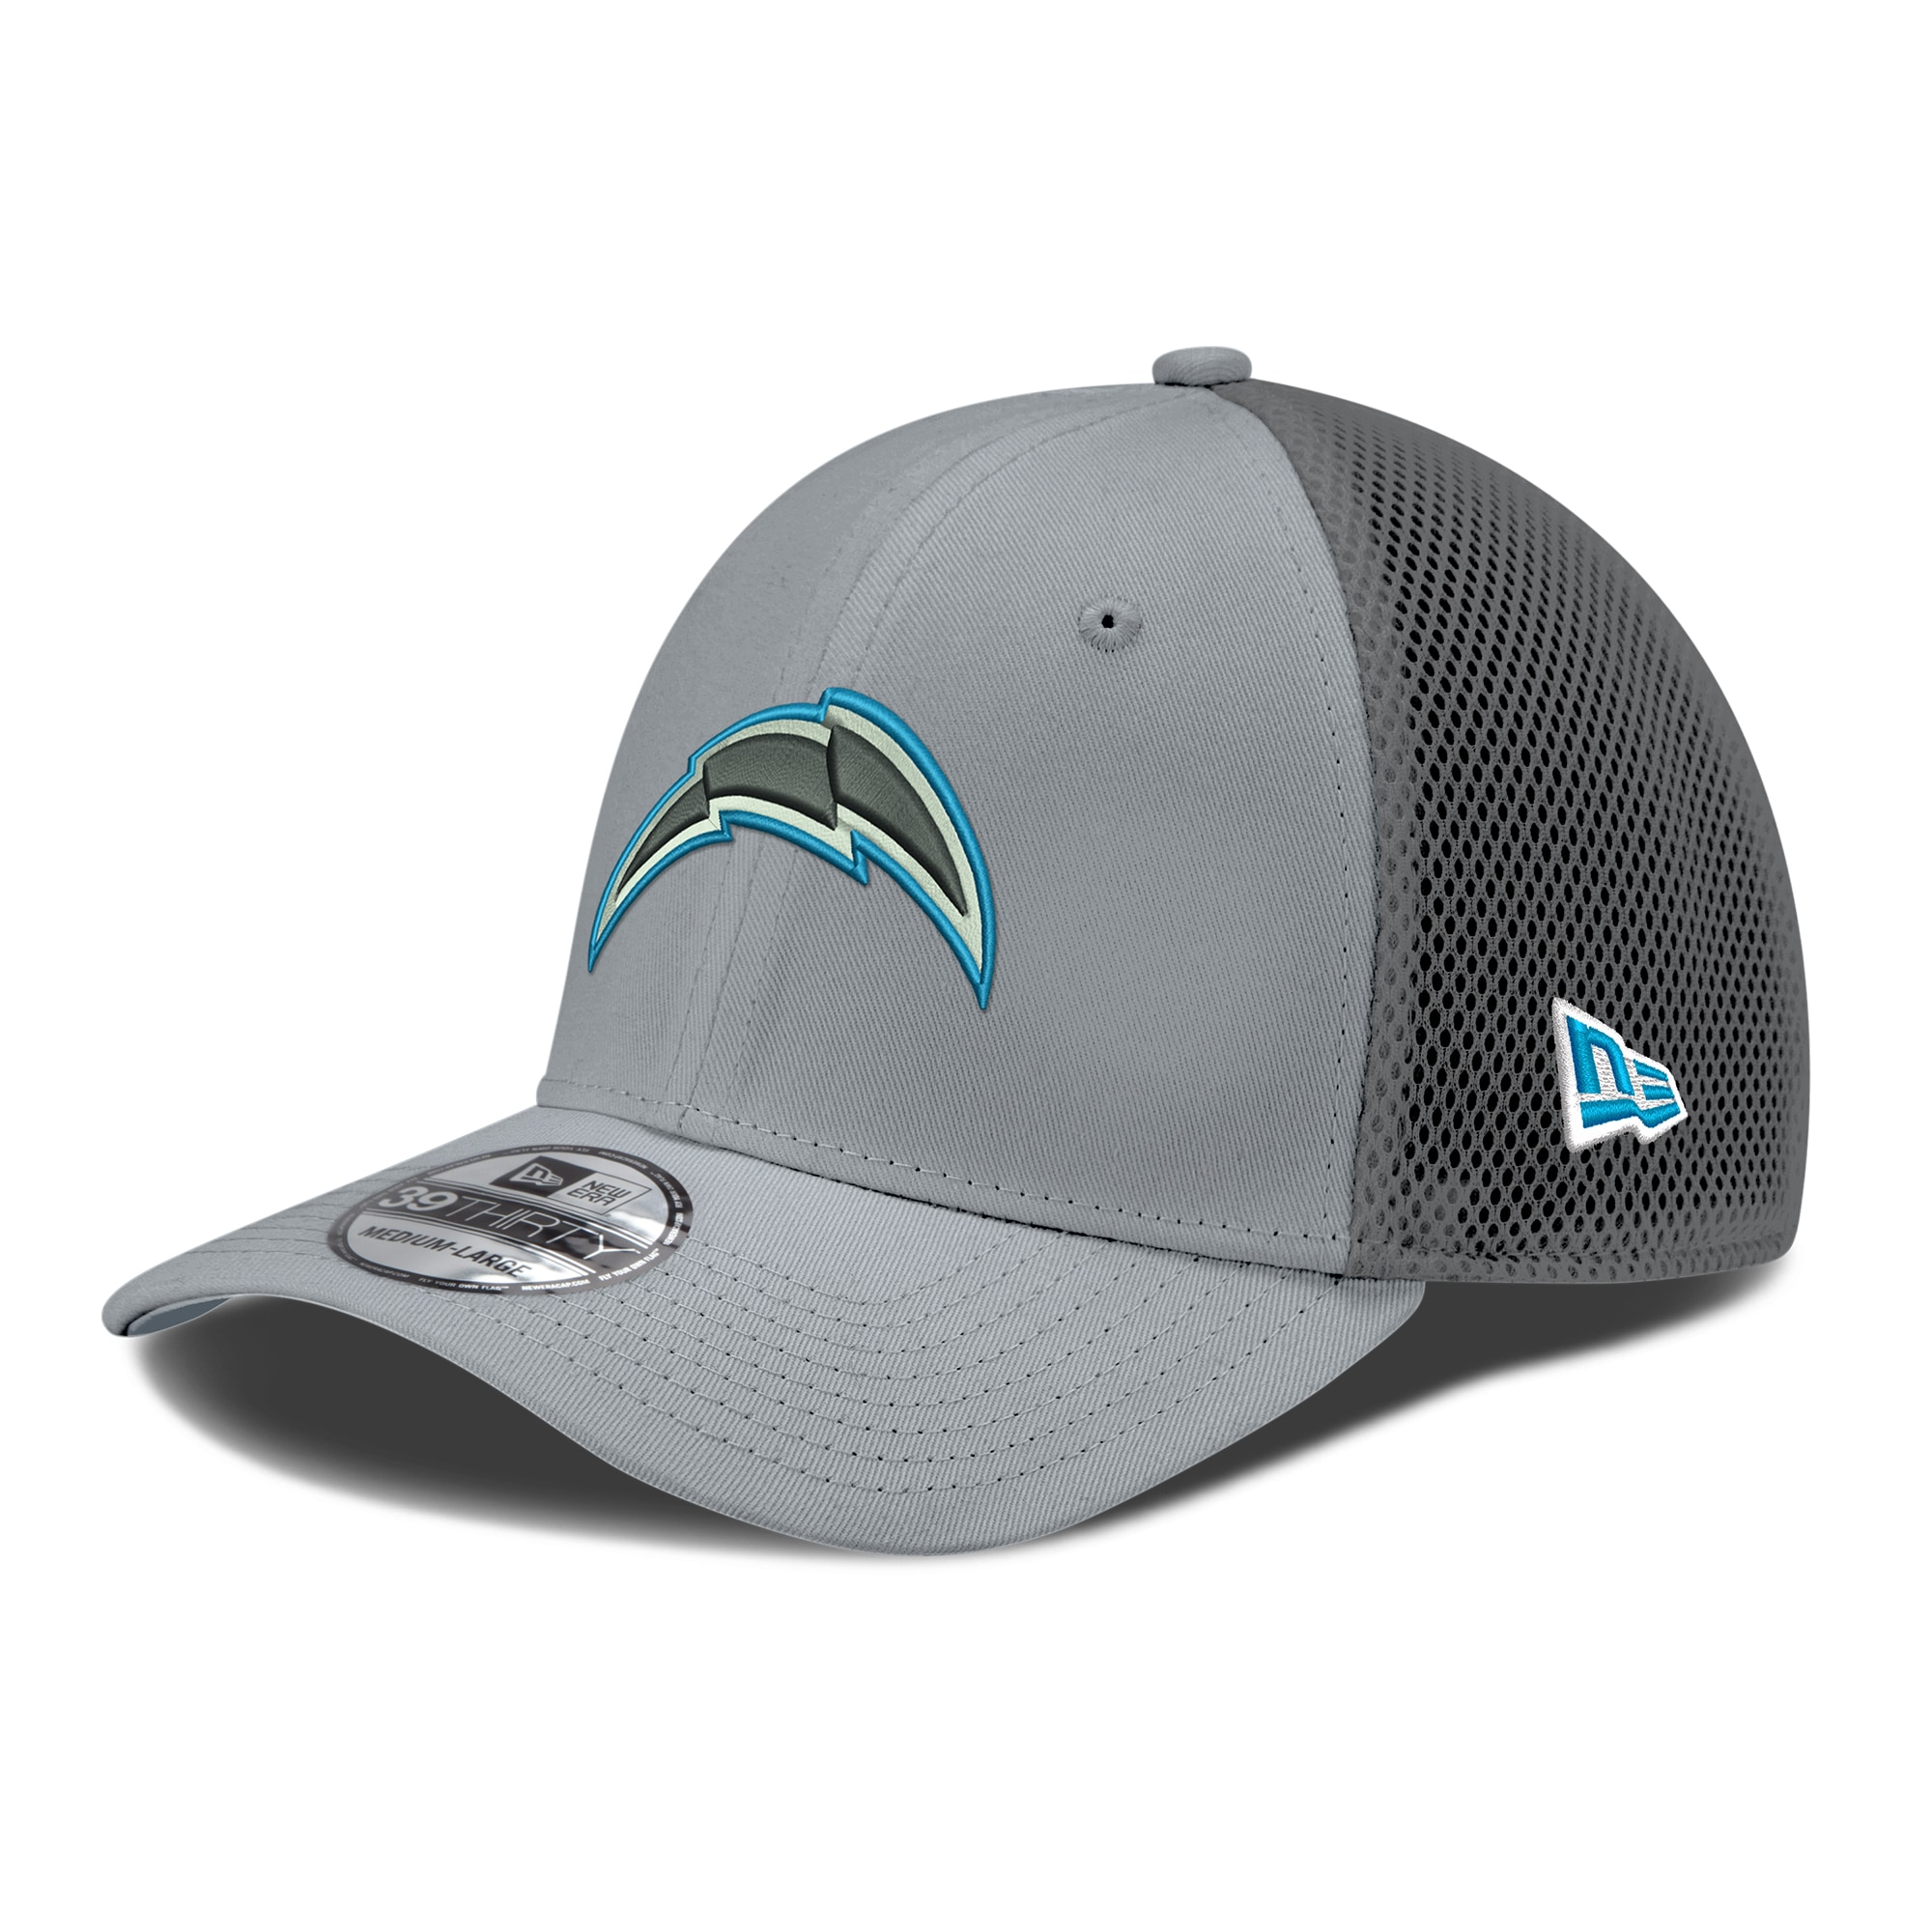 Los Angeles Chargers New Era Gray Grayed Out Neo 2 Logo 39THIRTY Flex Hat - Gray/Graphite